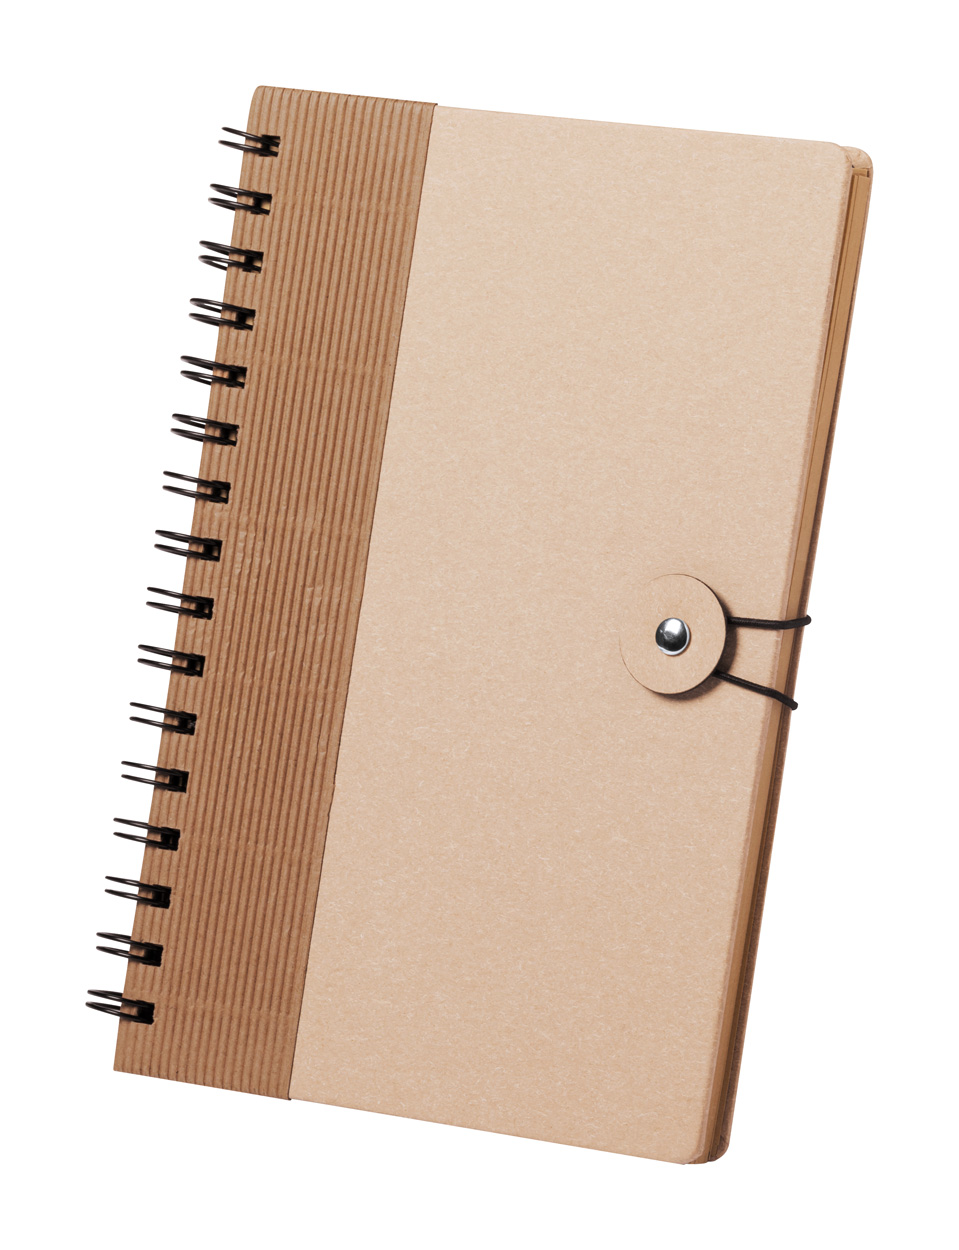 Veldun notebook